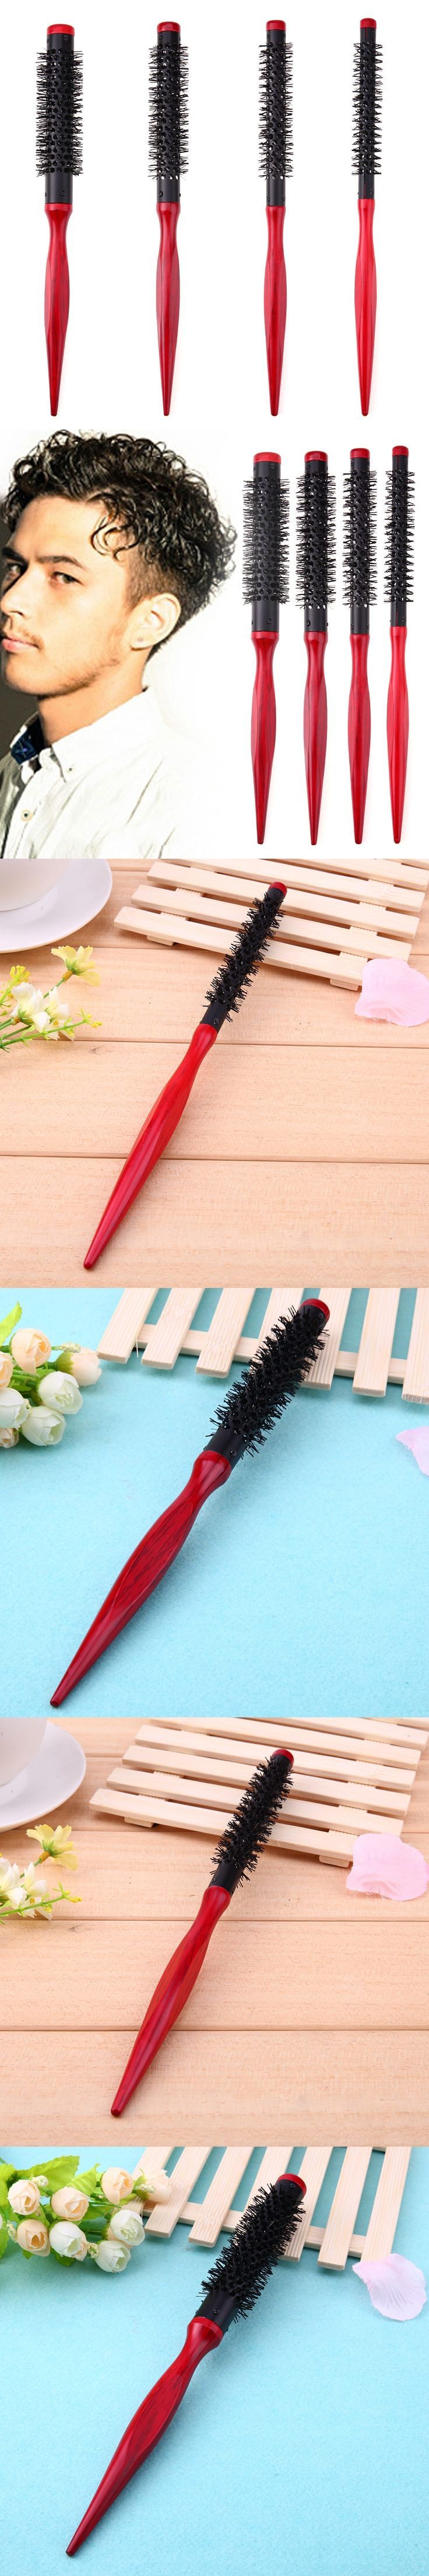 4 pcs Hair Roll Comb Antistatic Hairbrush Multifunction for Combing Curls Dye Cutting DIY Curly Hair Brushes Styling Tools Combs